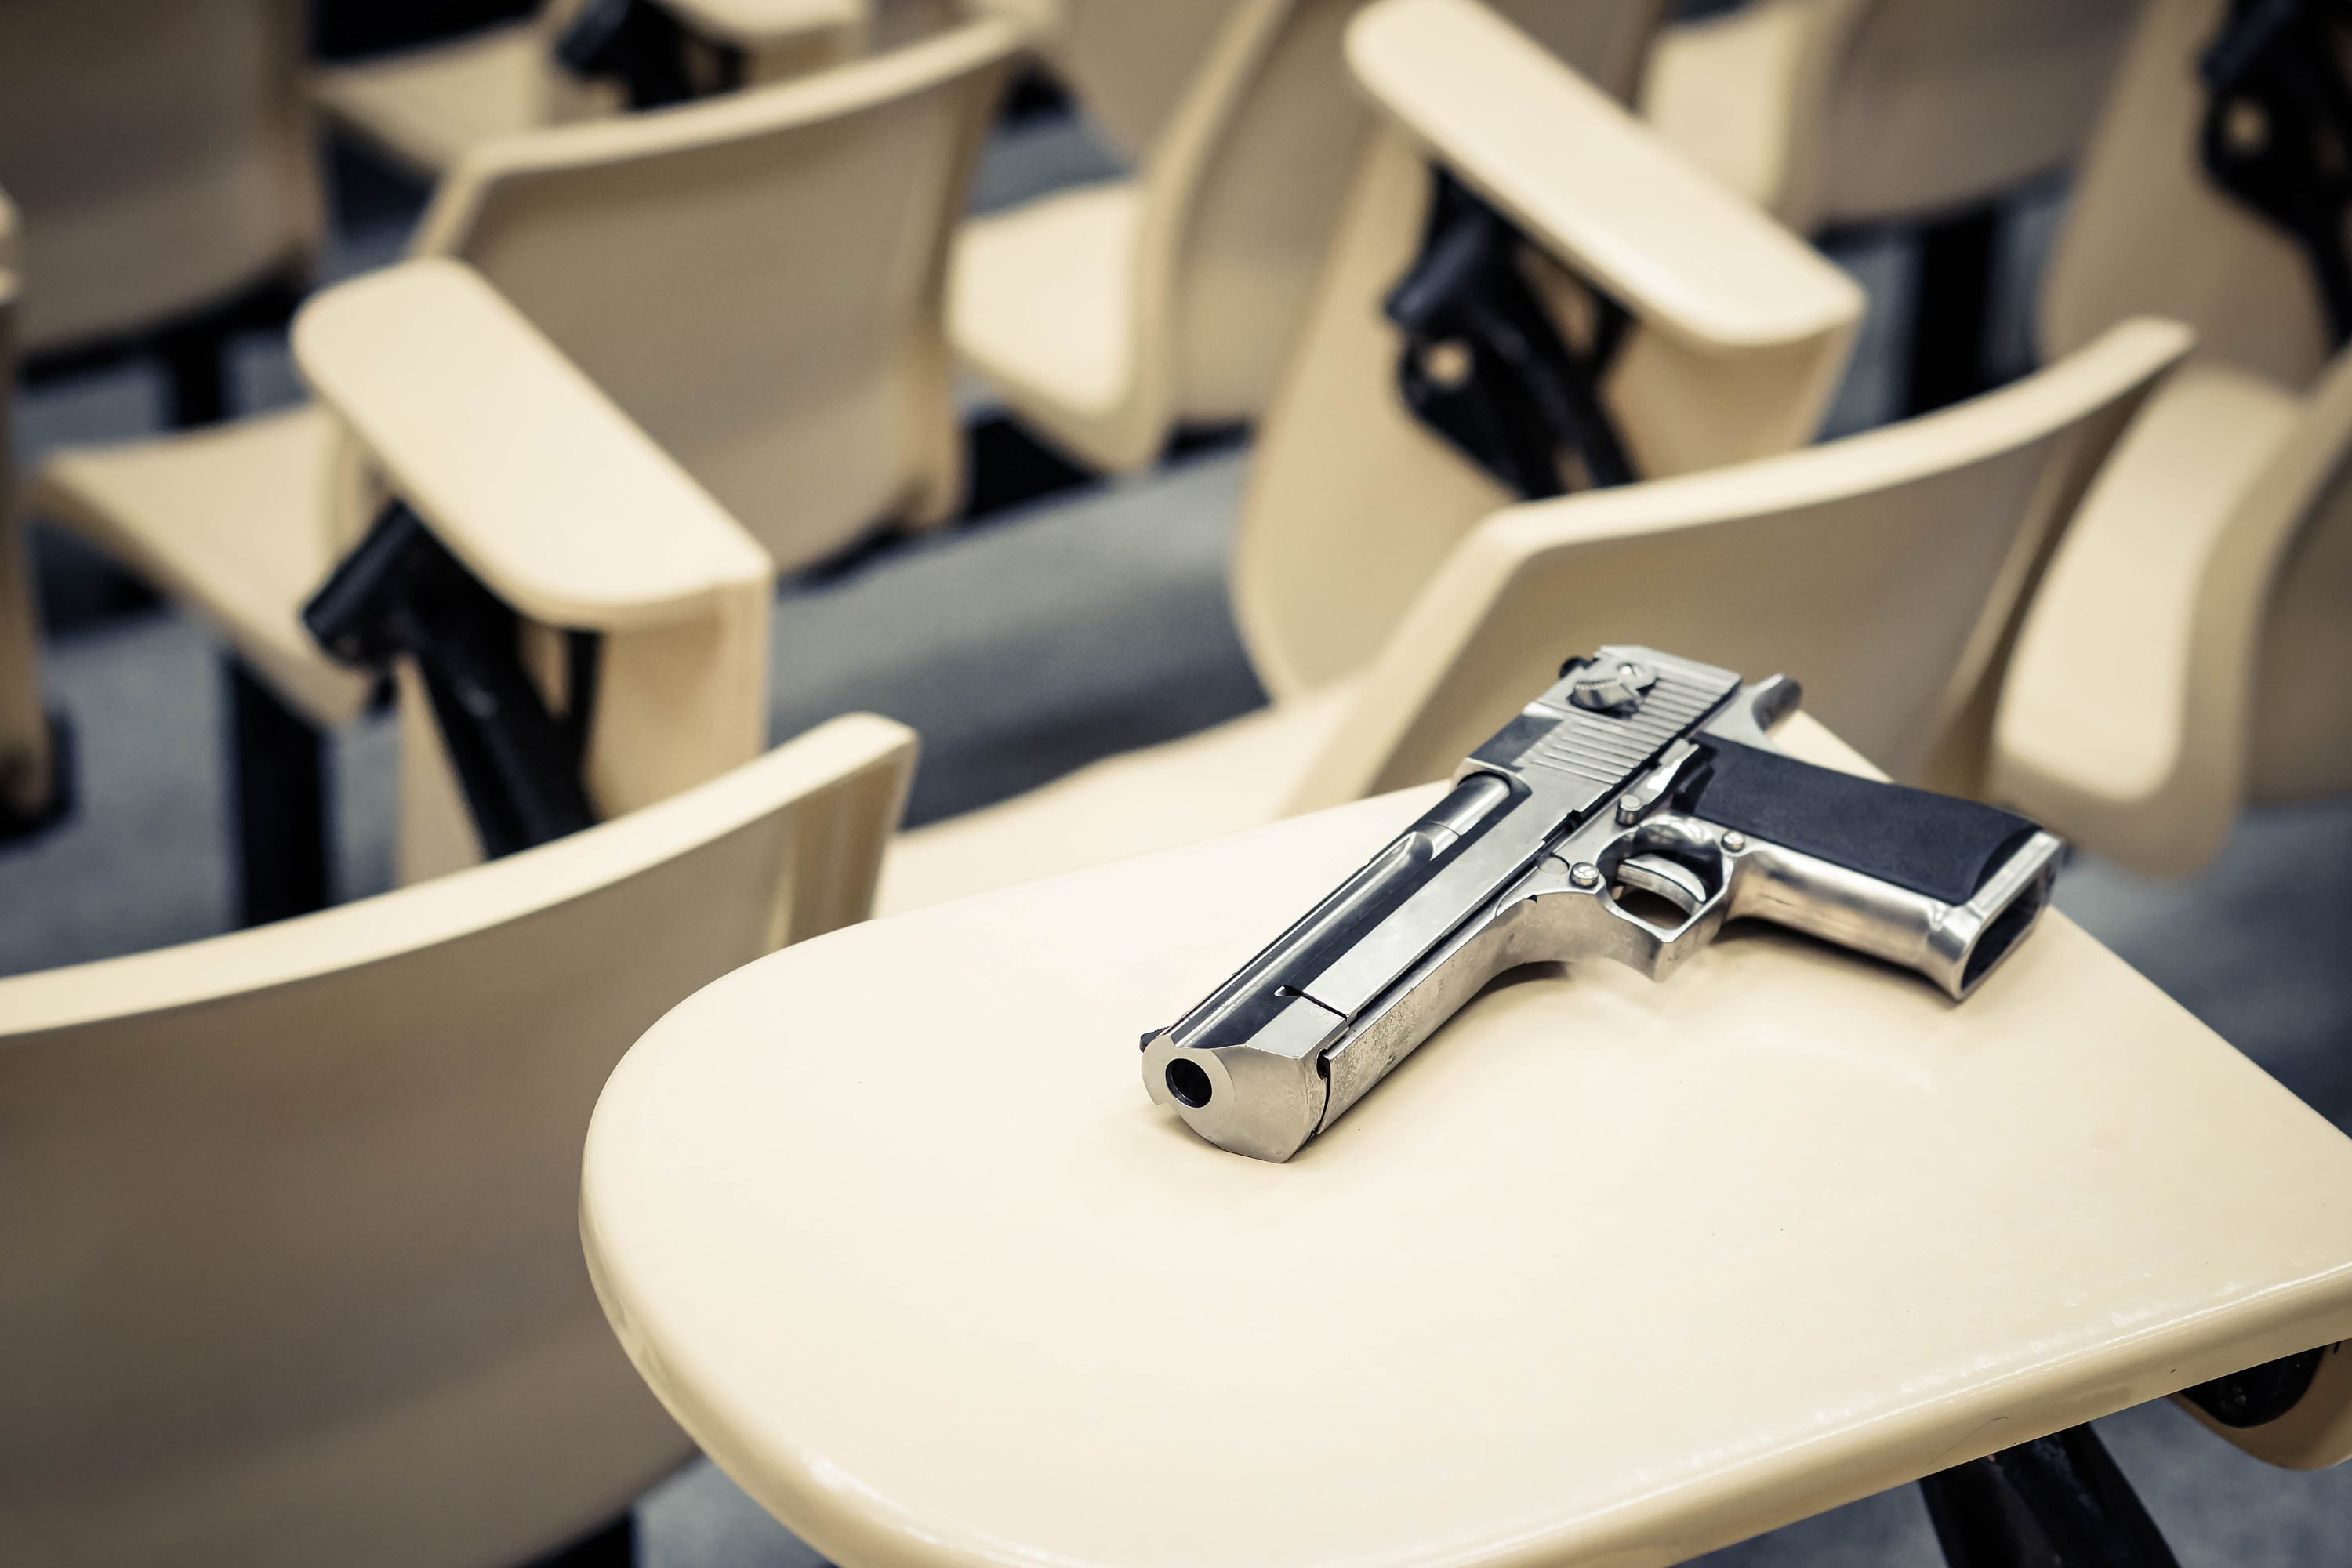 In the wake of last week's shooting, members of Florida's Senate Judiciary committee are again pushing a bill that would allow designated staff members to carry firearms on school grounds. Republican state Sen. Dennis Baxley proposed this bill prior to the horrific Valentine's Day shooting, but no action had been taken on it,the Tallahassee Democrat …